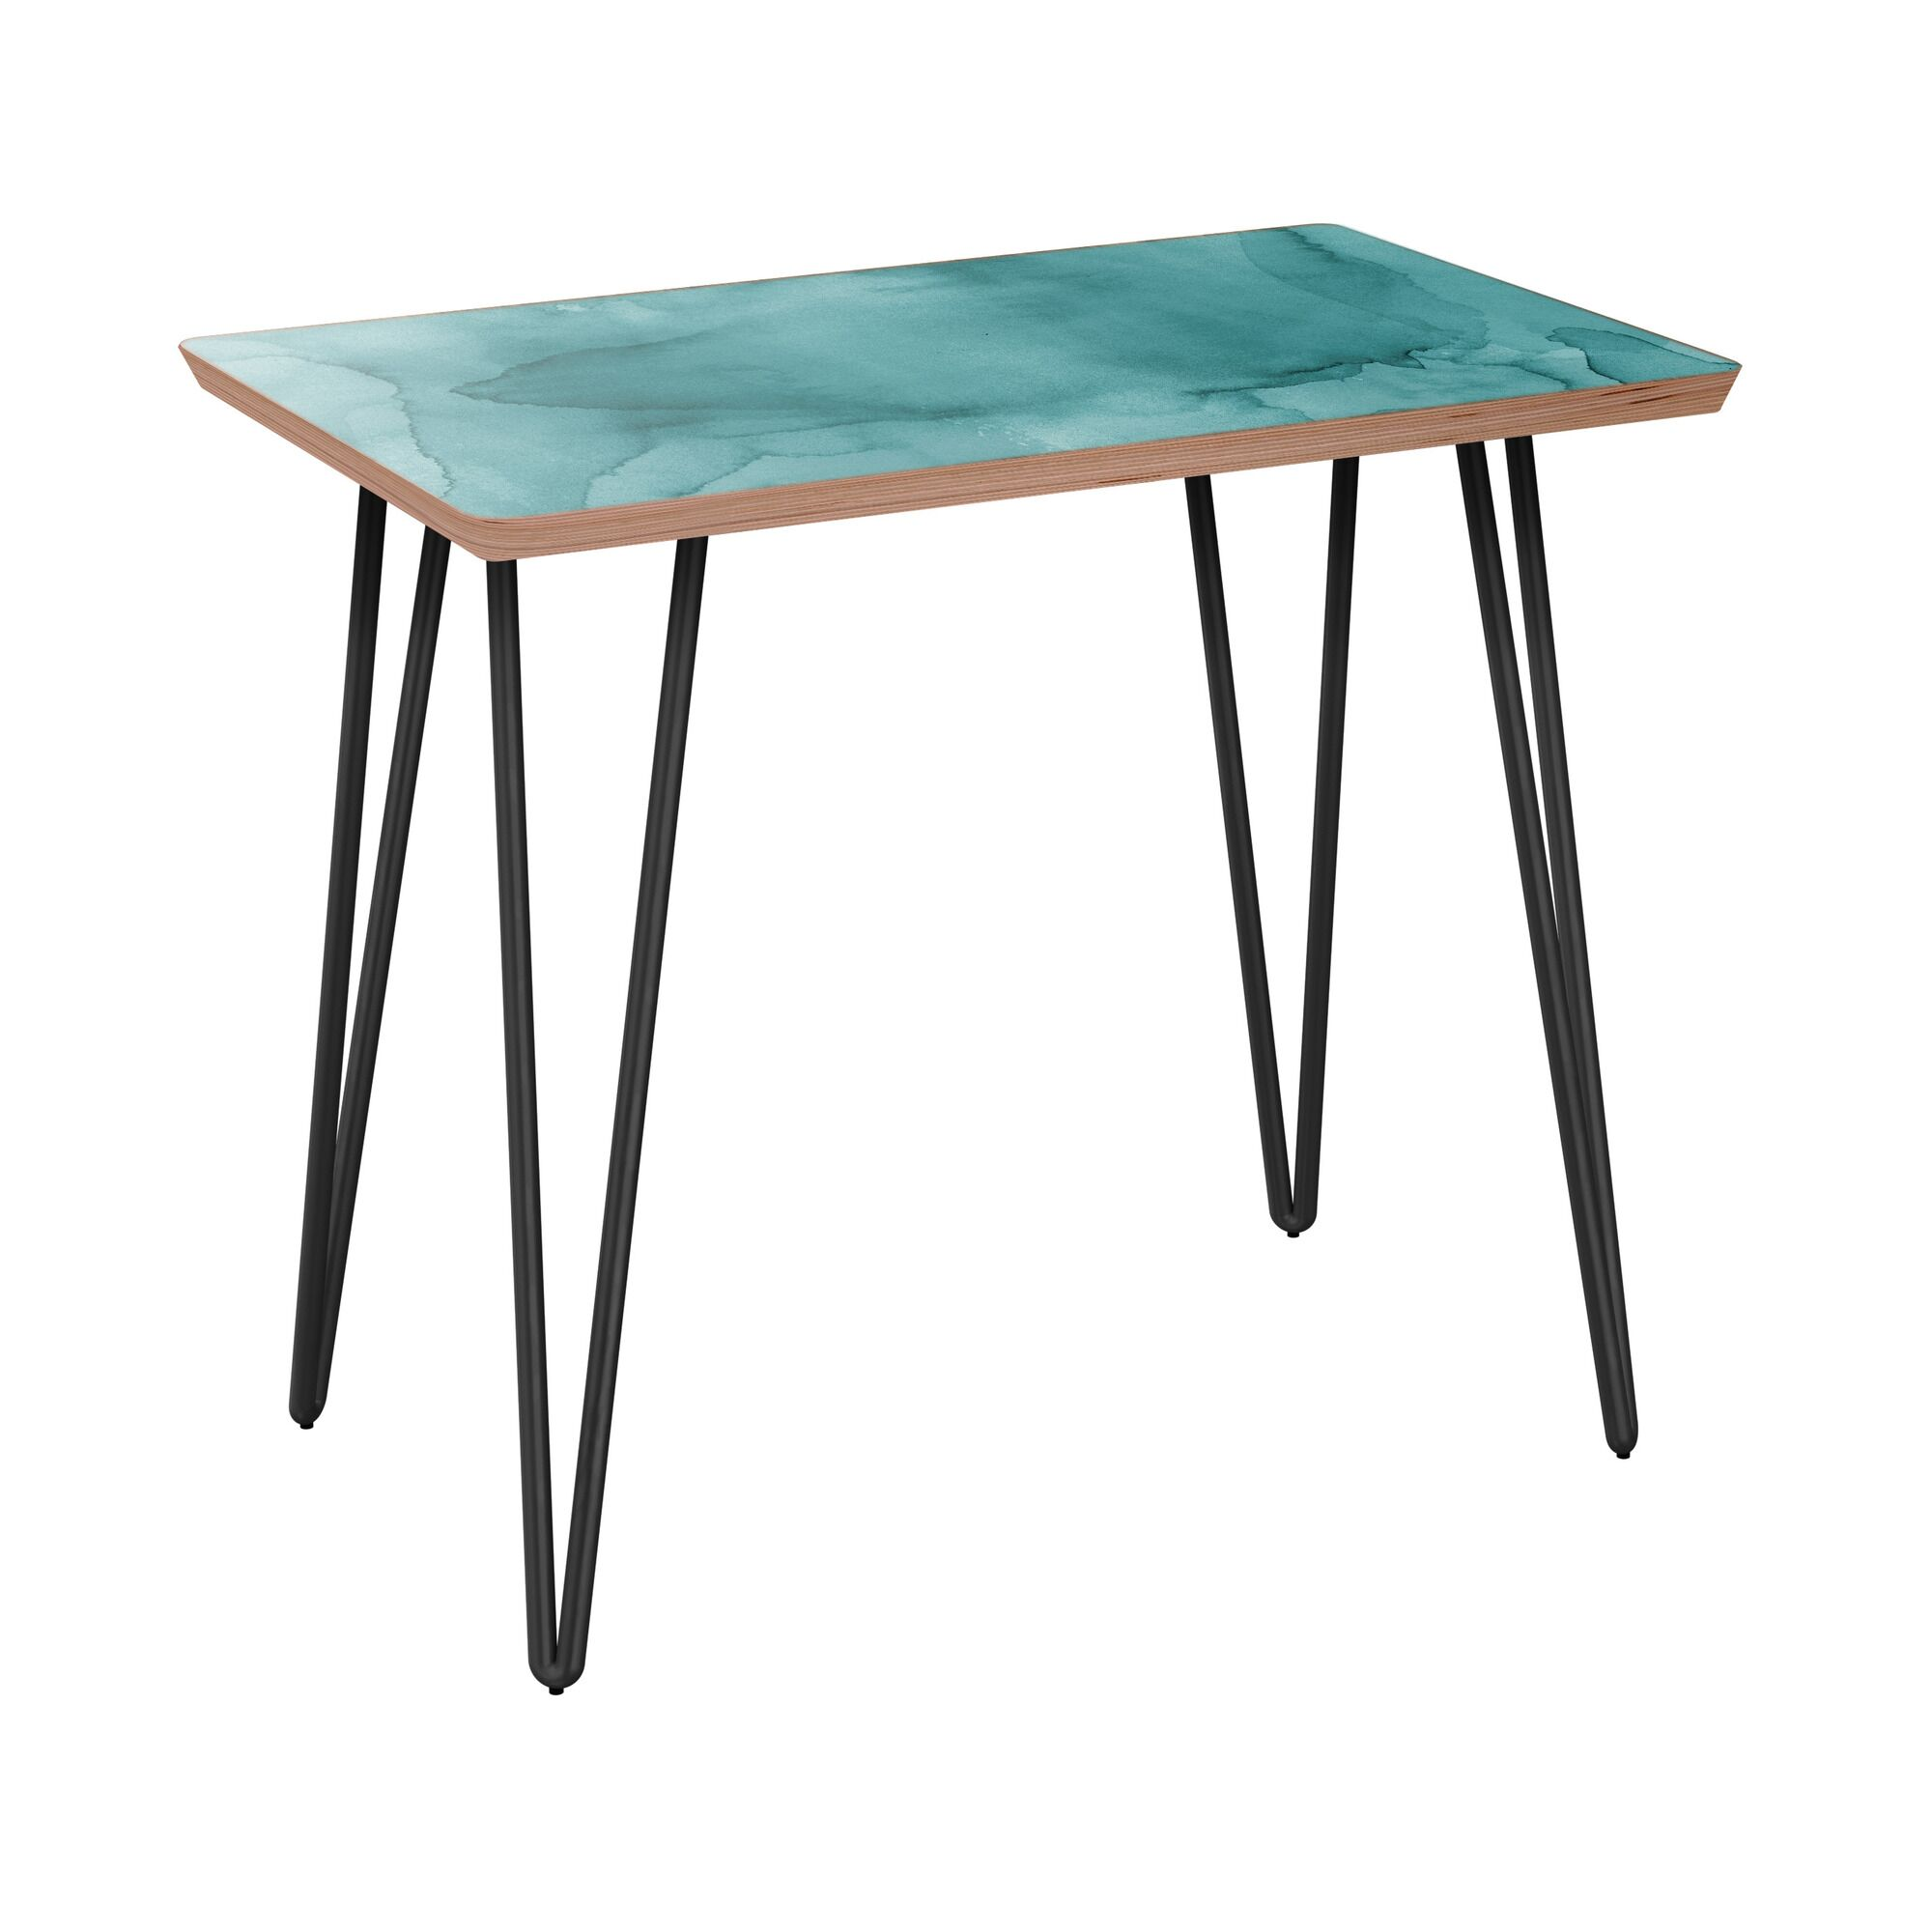 Kalona End Table Table Base Color: Black, Table Top Boarder Color: Walnut, Table Top Color: Turquoise